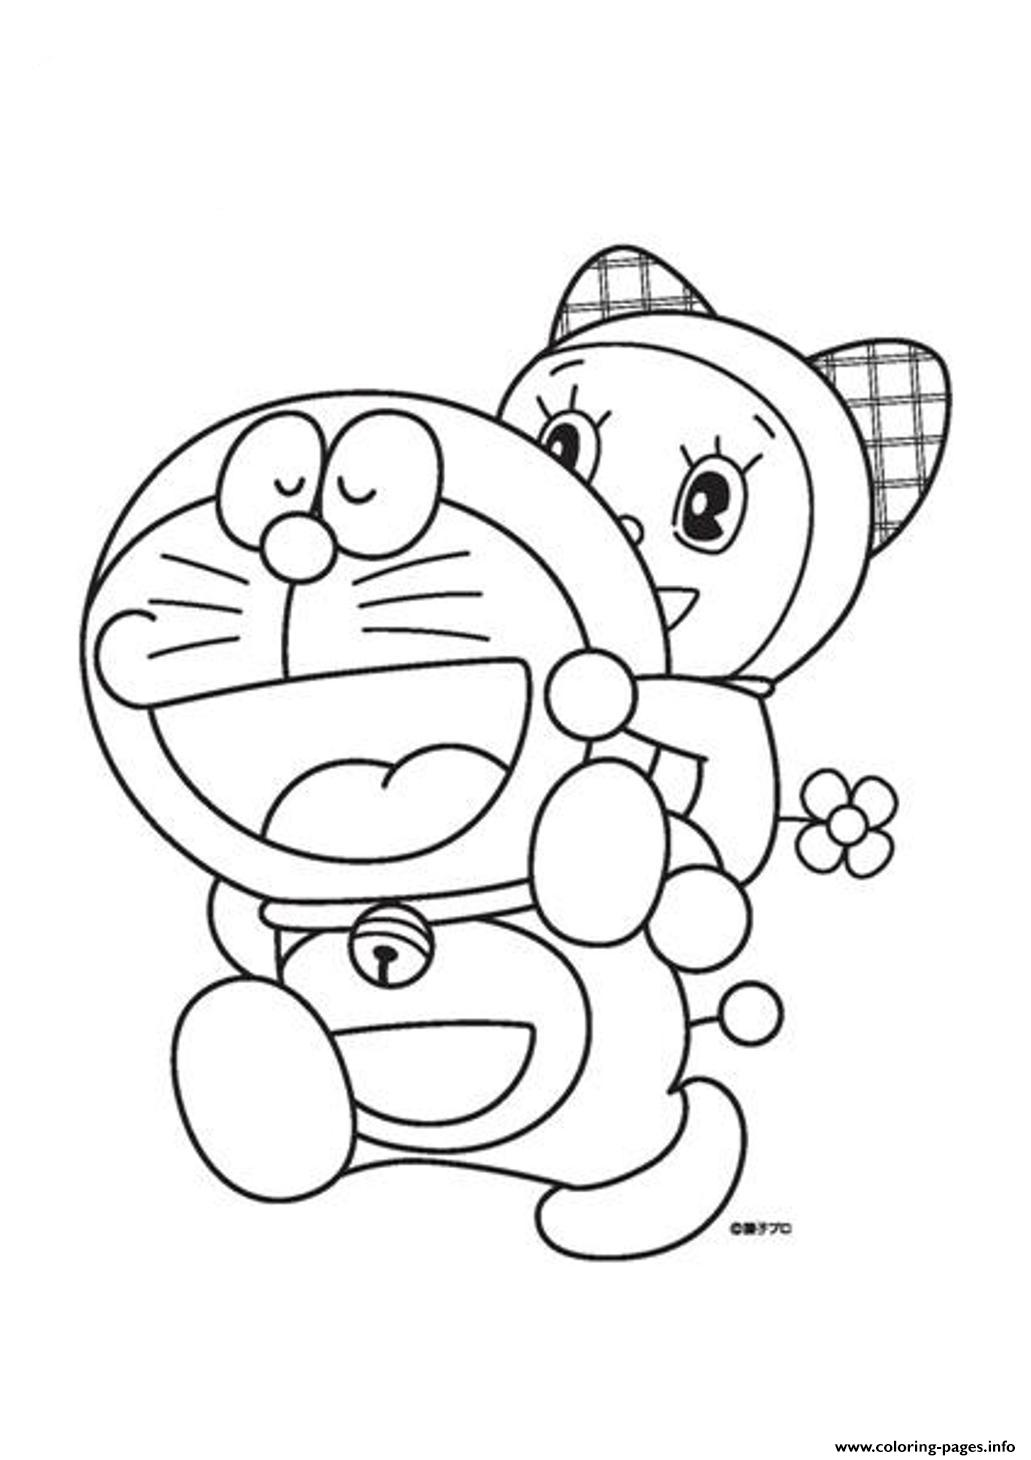 Cartoon S Doraemon For Kidsd6d2 Coloring Pages Printable